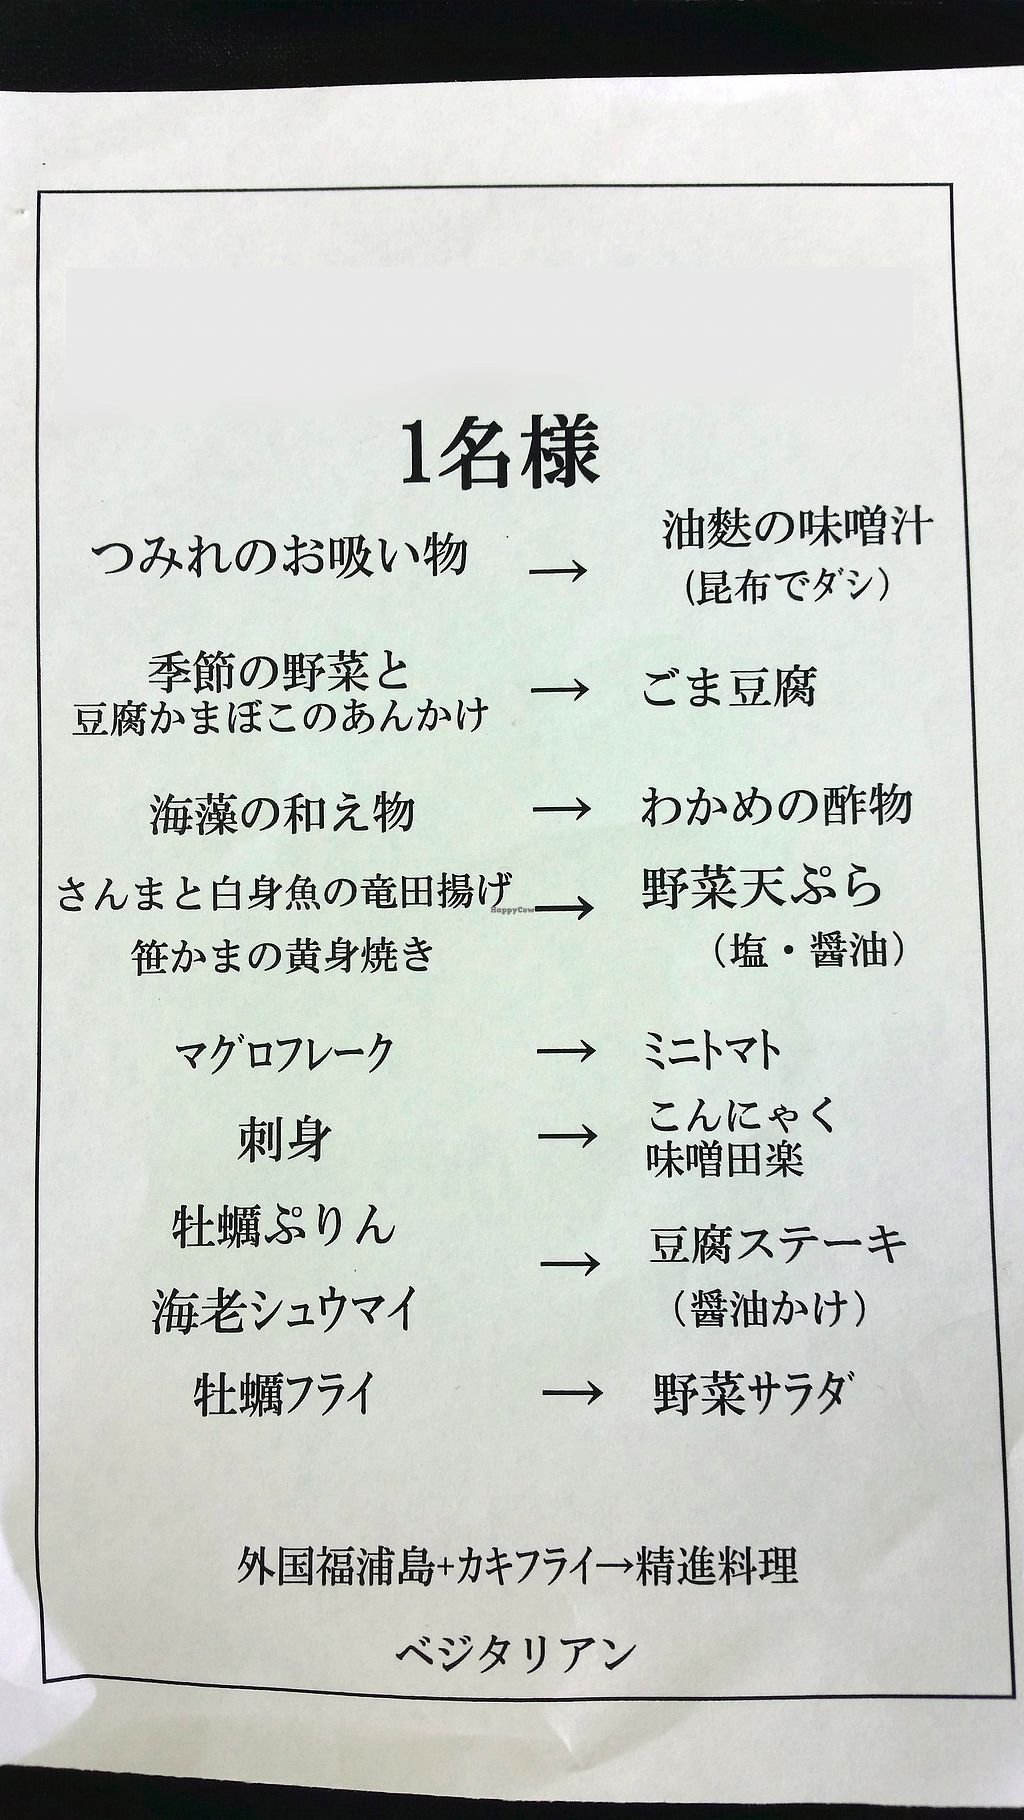 """Photo of Matsushima Kamaboko  by <a href=""""/members/profile/JVeggie"""">JVeggie</a> <br/>Menu changes they have made to accommodate vegetarians or vegans. This is the modified """"Fukuurajima"""" course (1620 yen as of 2017) <br/> July 18, 2017  - <a href='/contact/abuse/image/95833/281606'>Report</a>"""